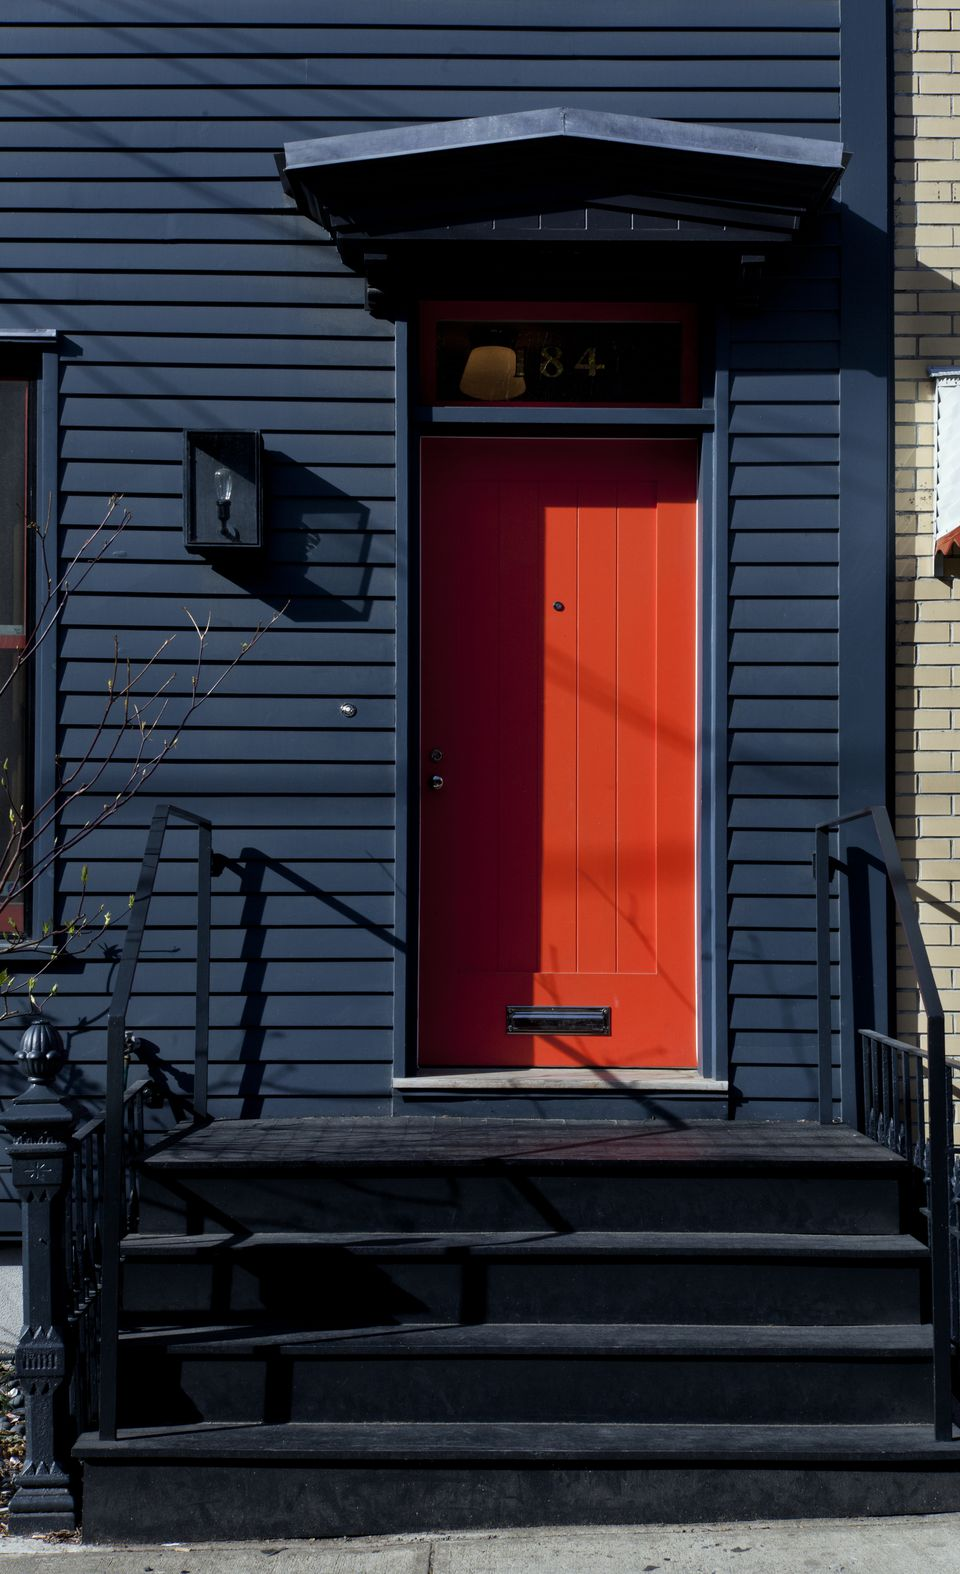 A black exterior with a bright red door